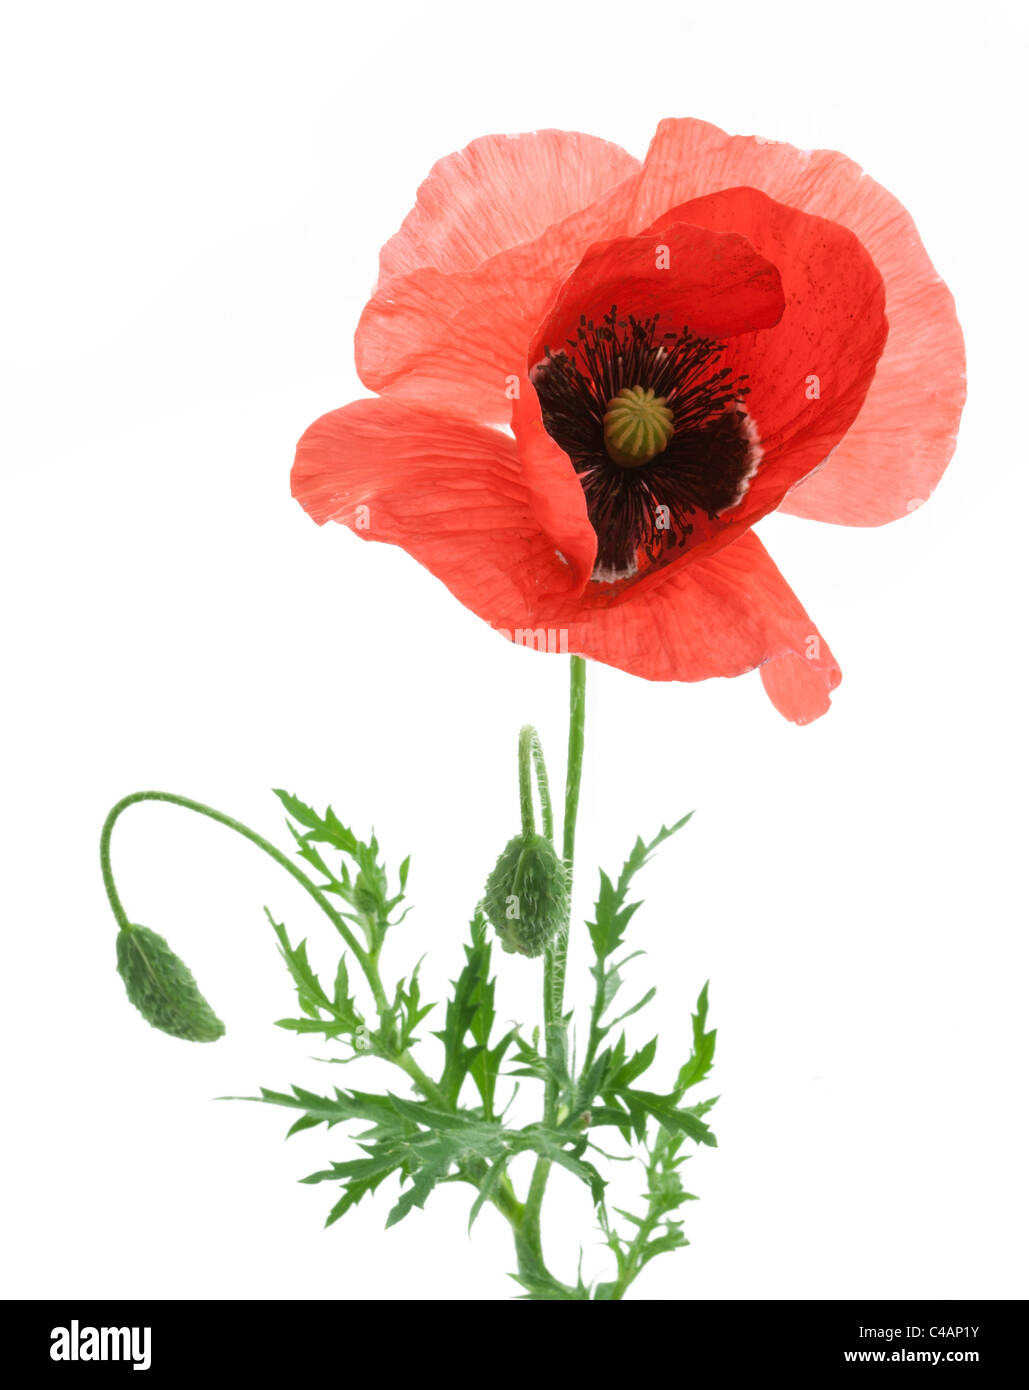 One beautiful red poppy isolated on a white background. - Stock Image